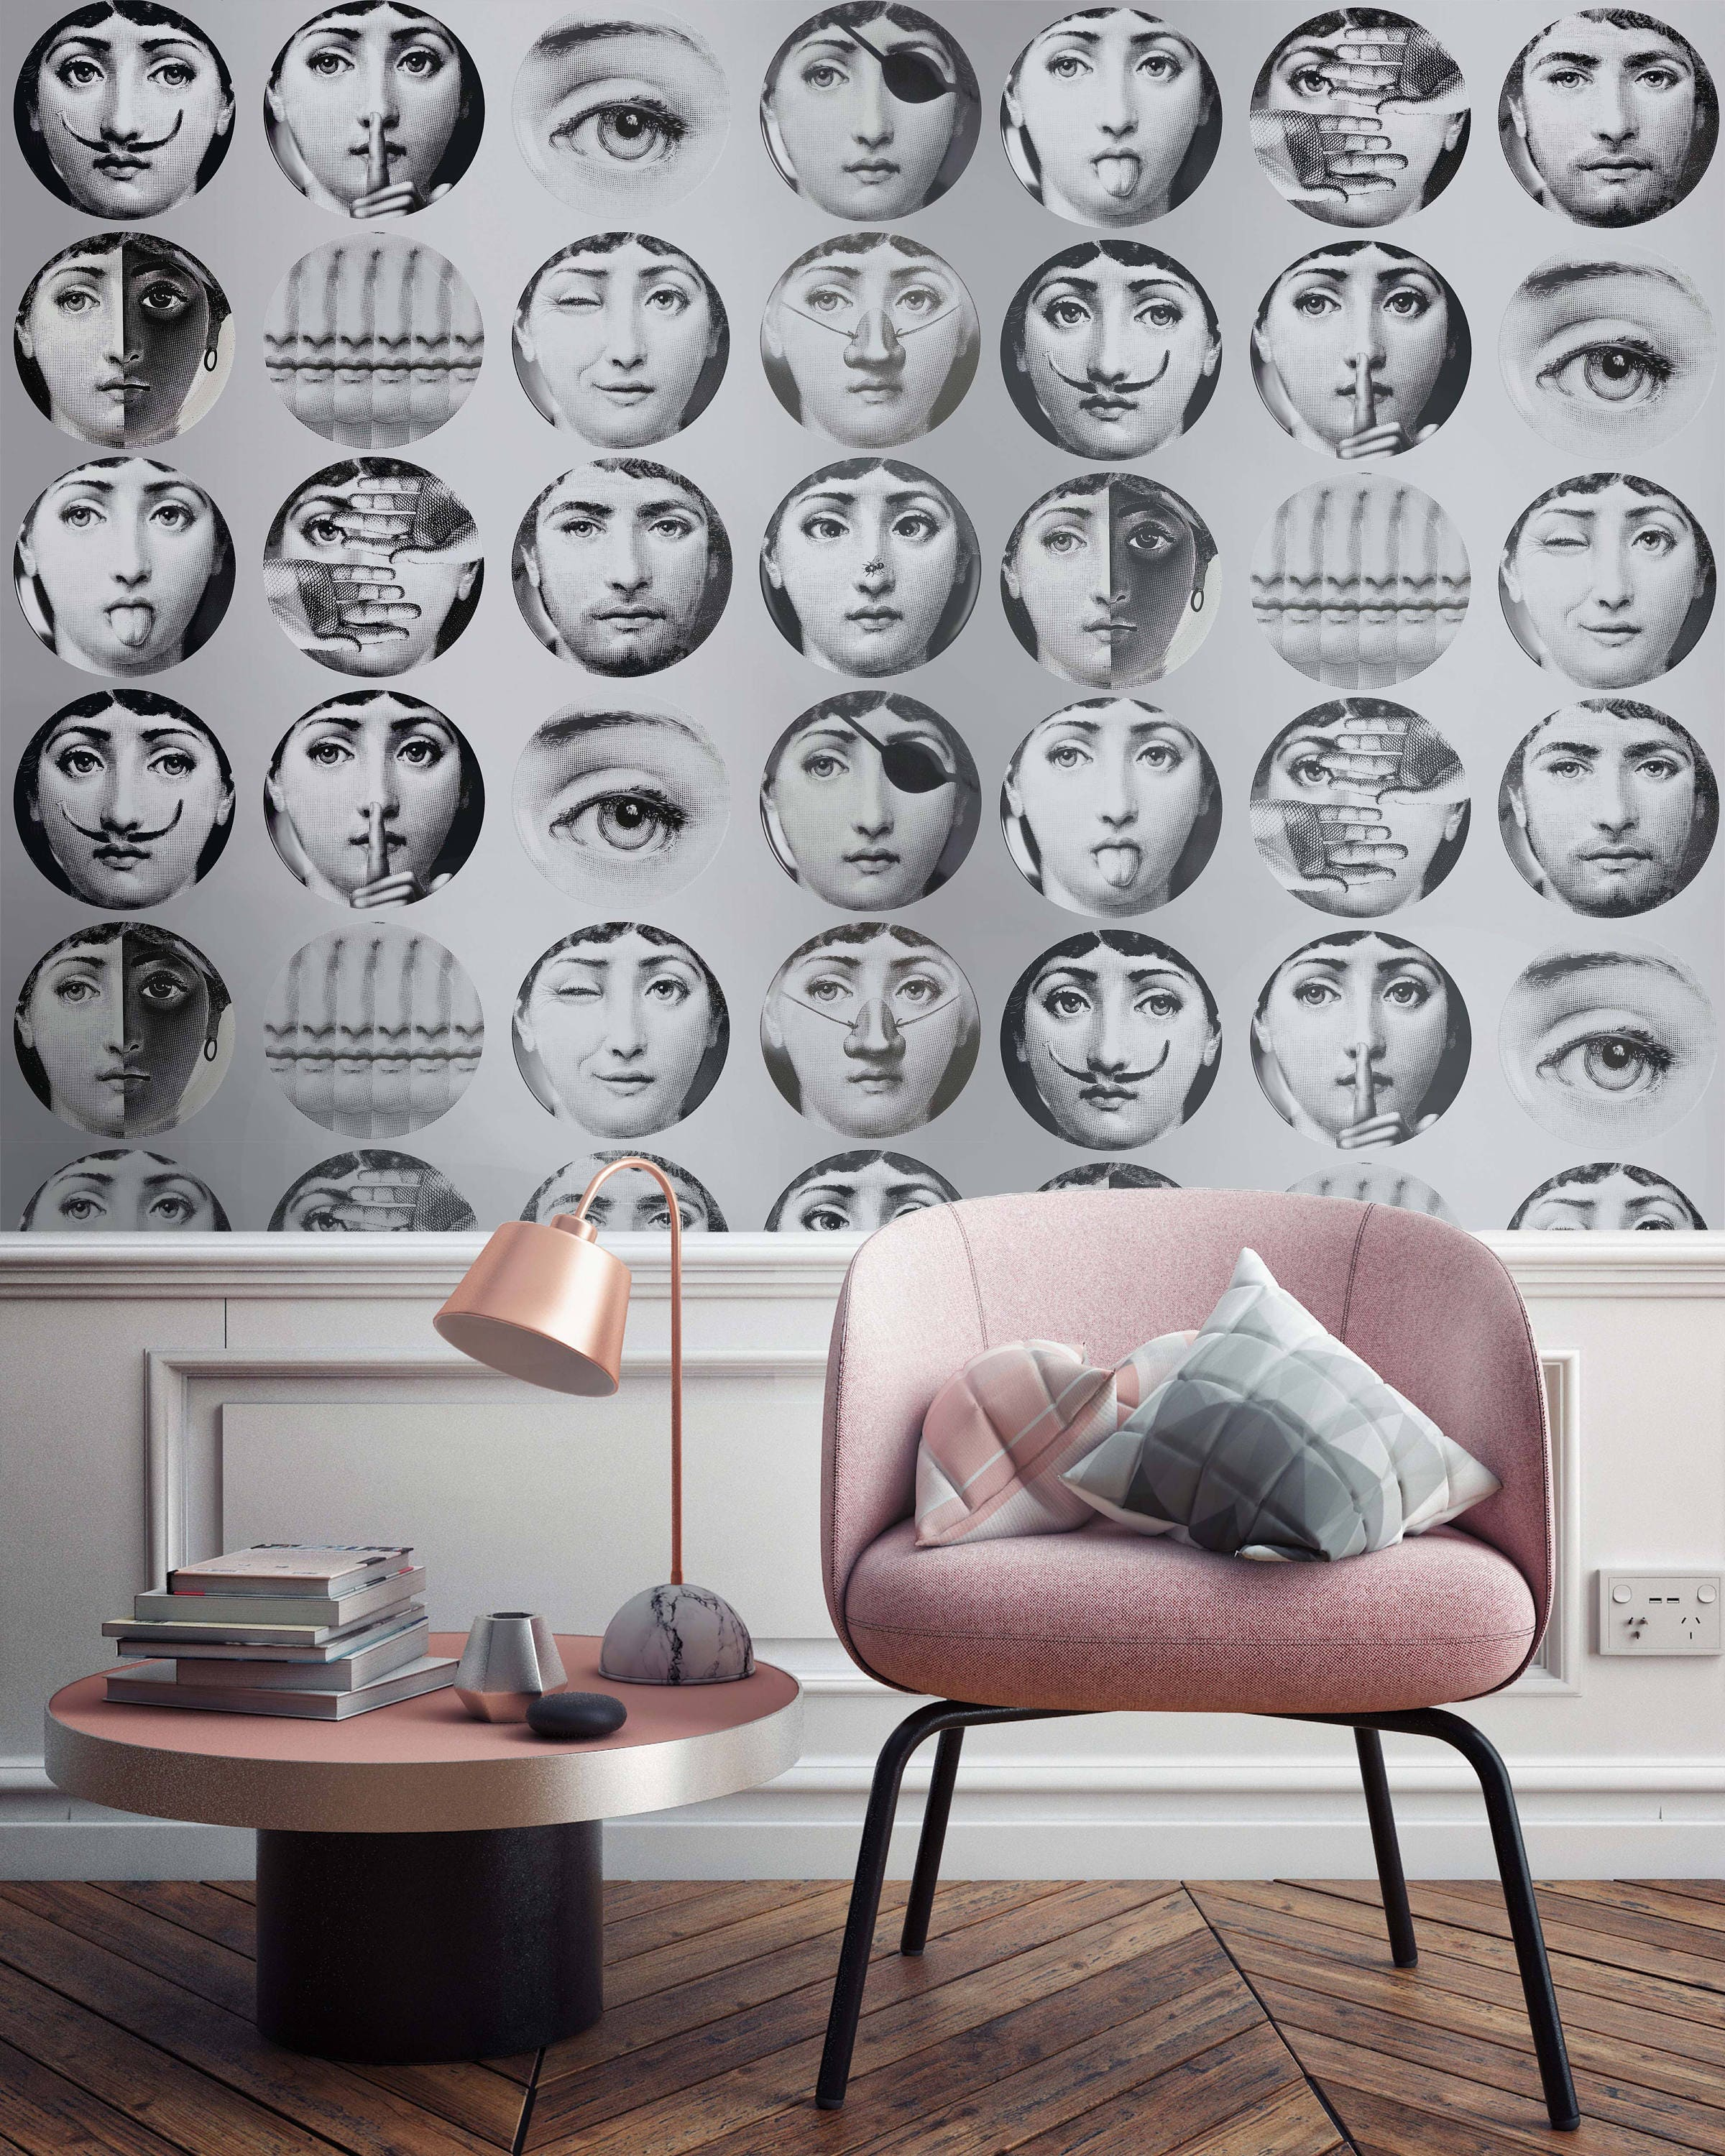 Faces wallpaper wallpaper dishes fornasetti wallpapers - Fornasetti faces wallpaper ...